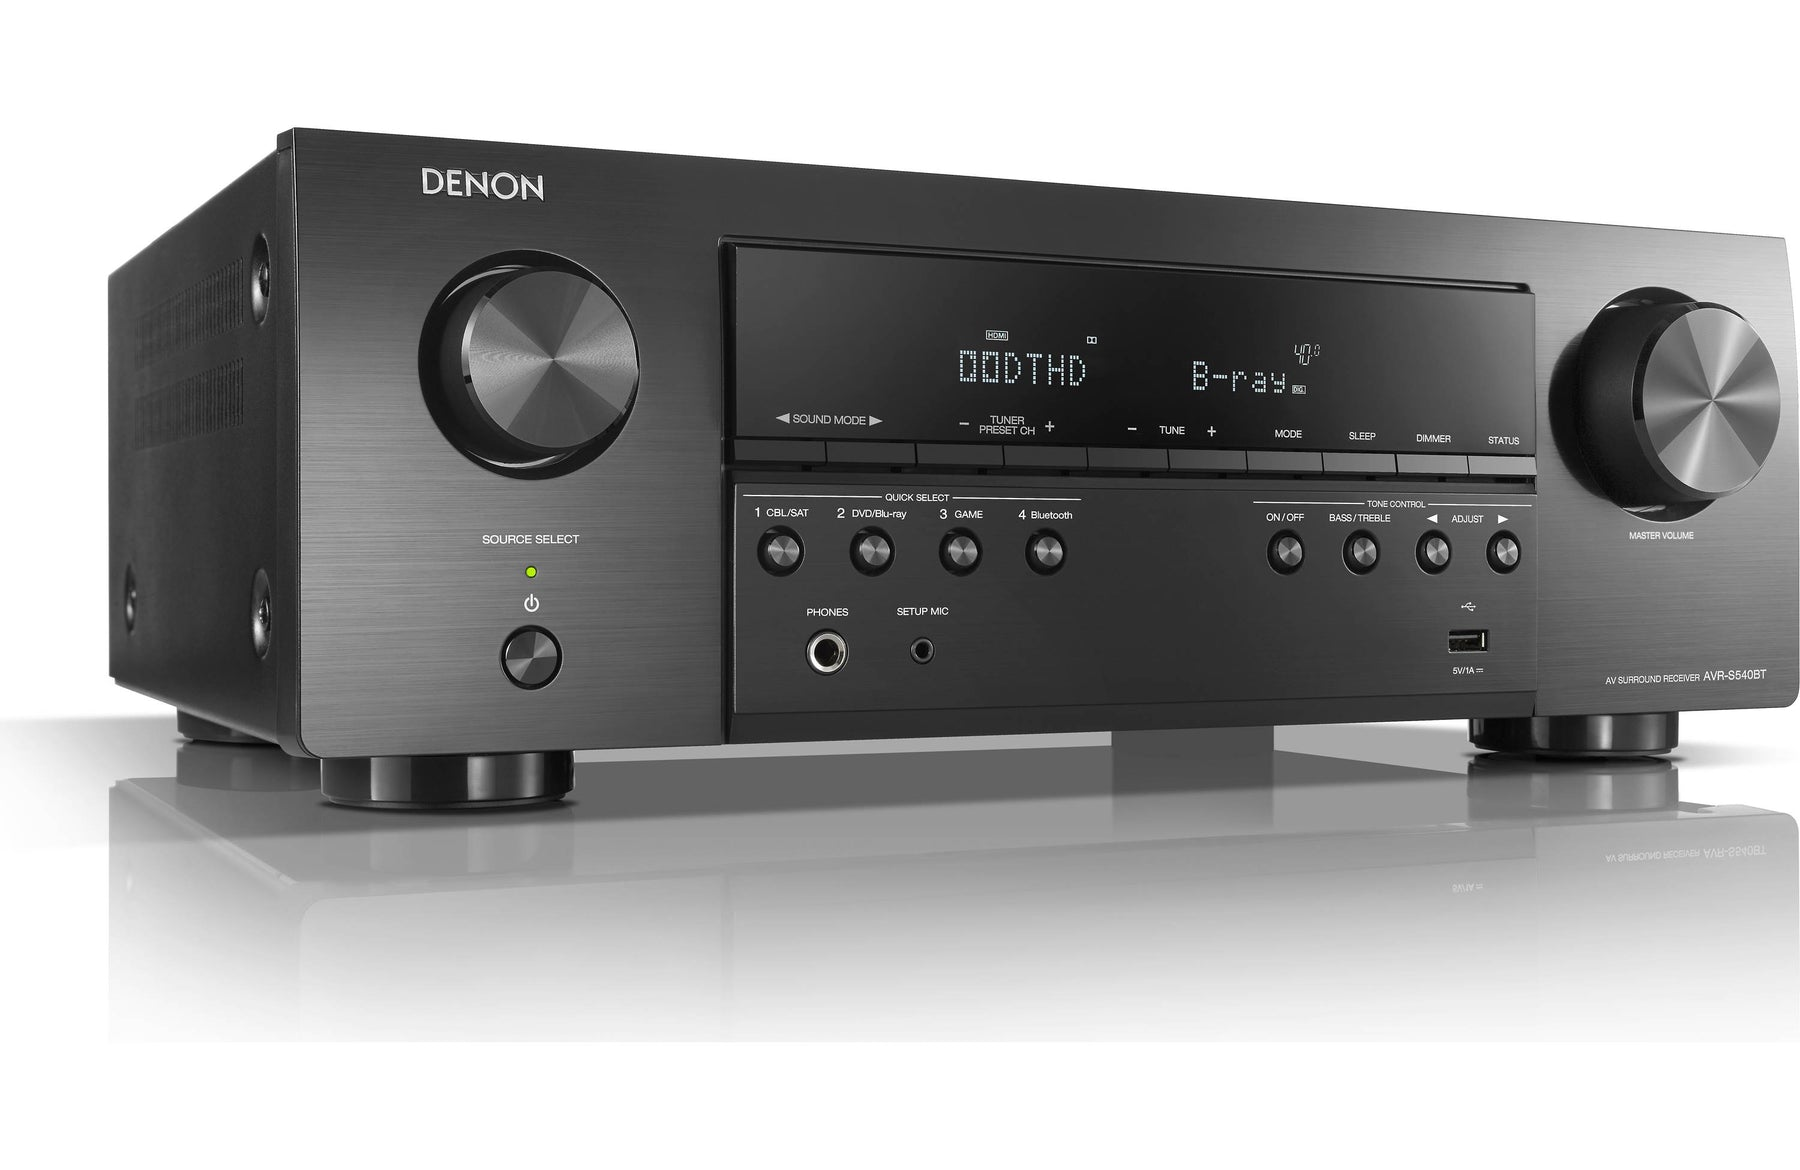 Denon AVR-S540BT 5.1 Channel 4K Ultra HD AV Receiver with Bluetooth and Dolby Vision - Safe and Sound HQ